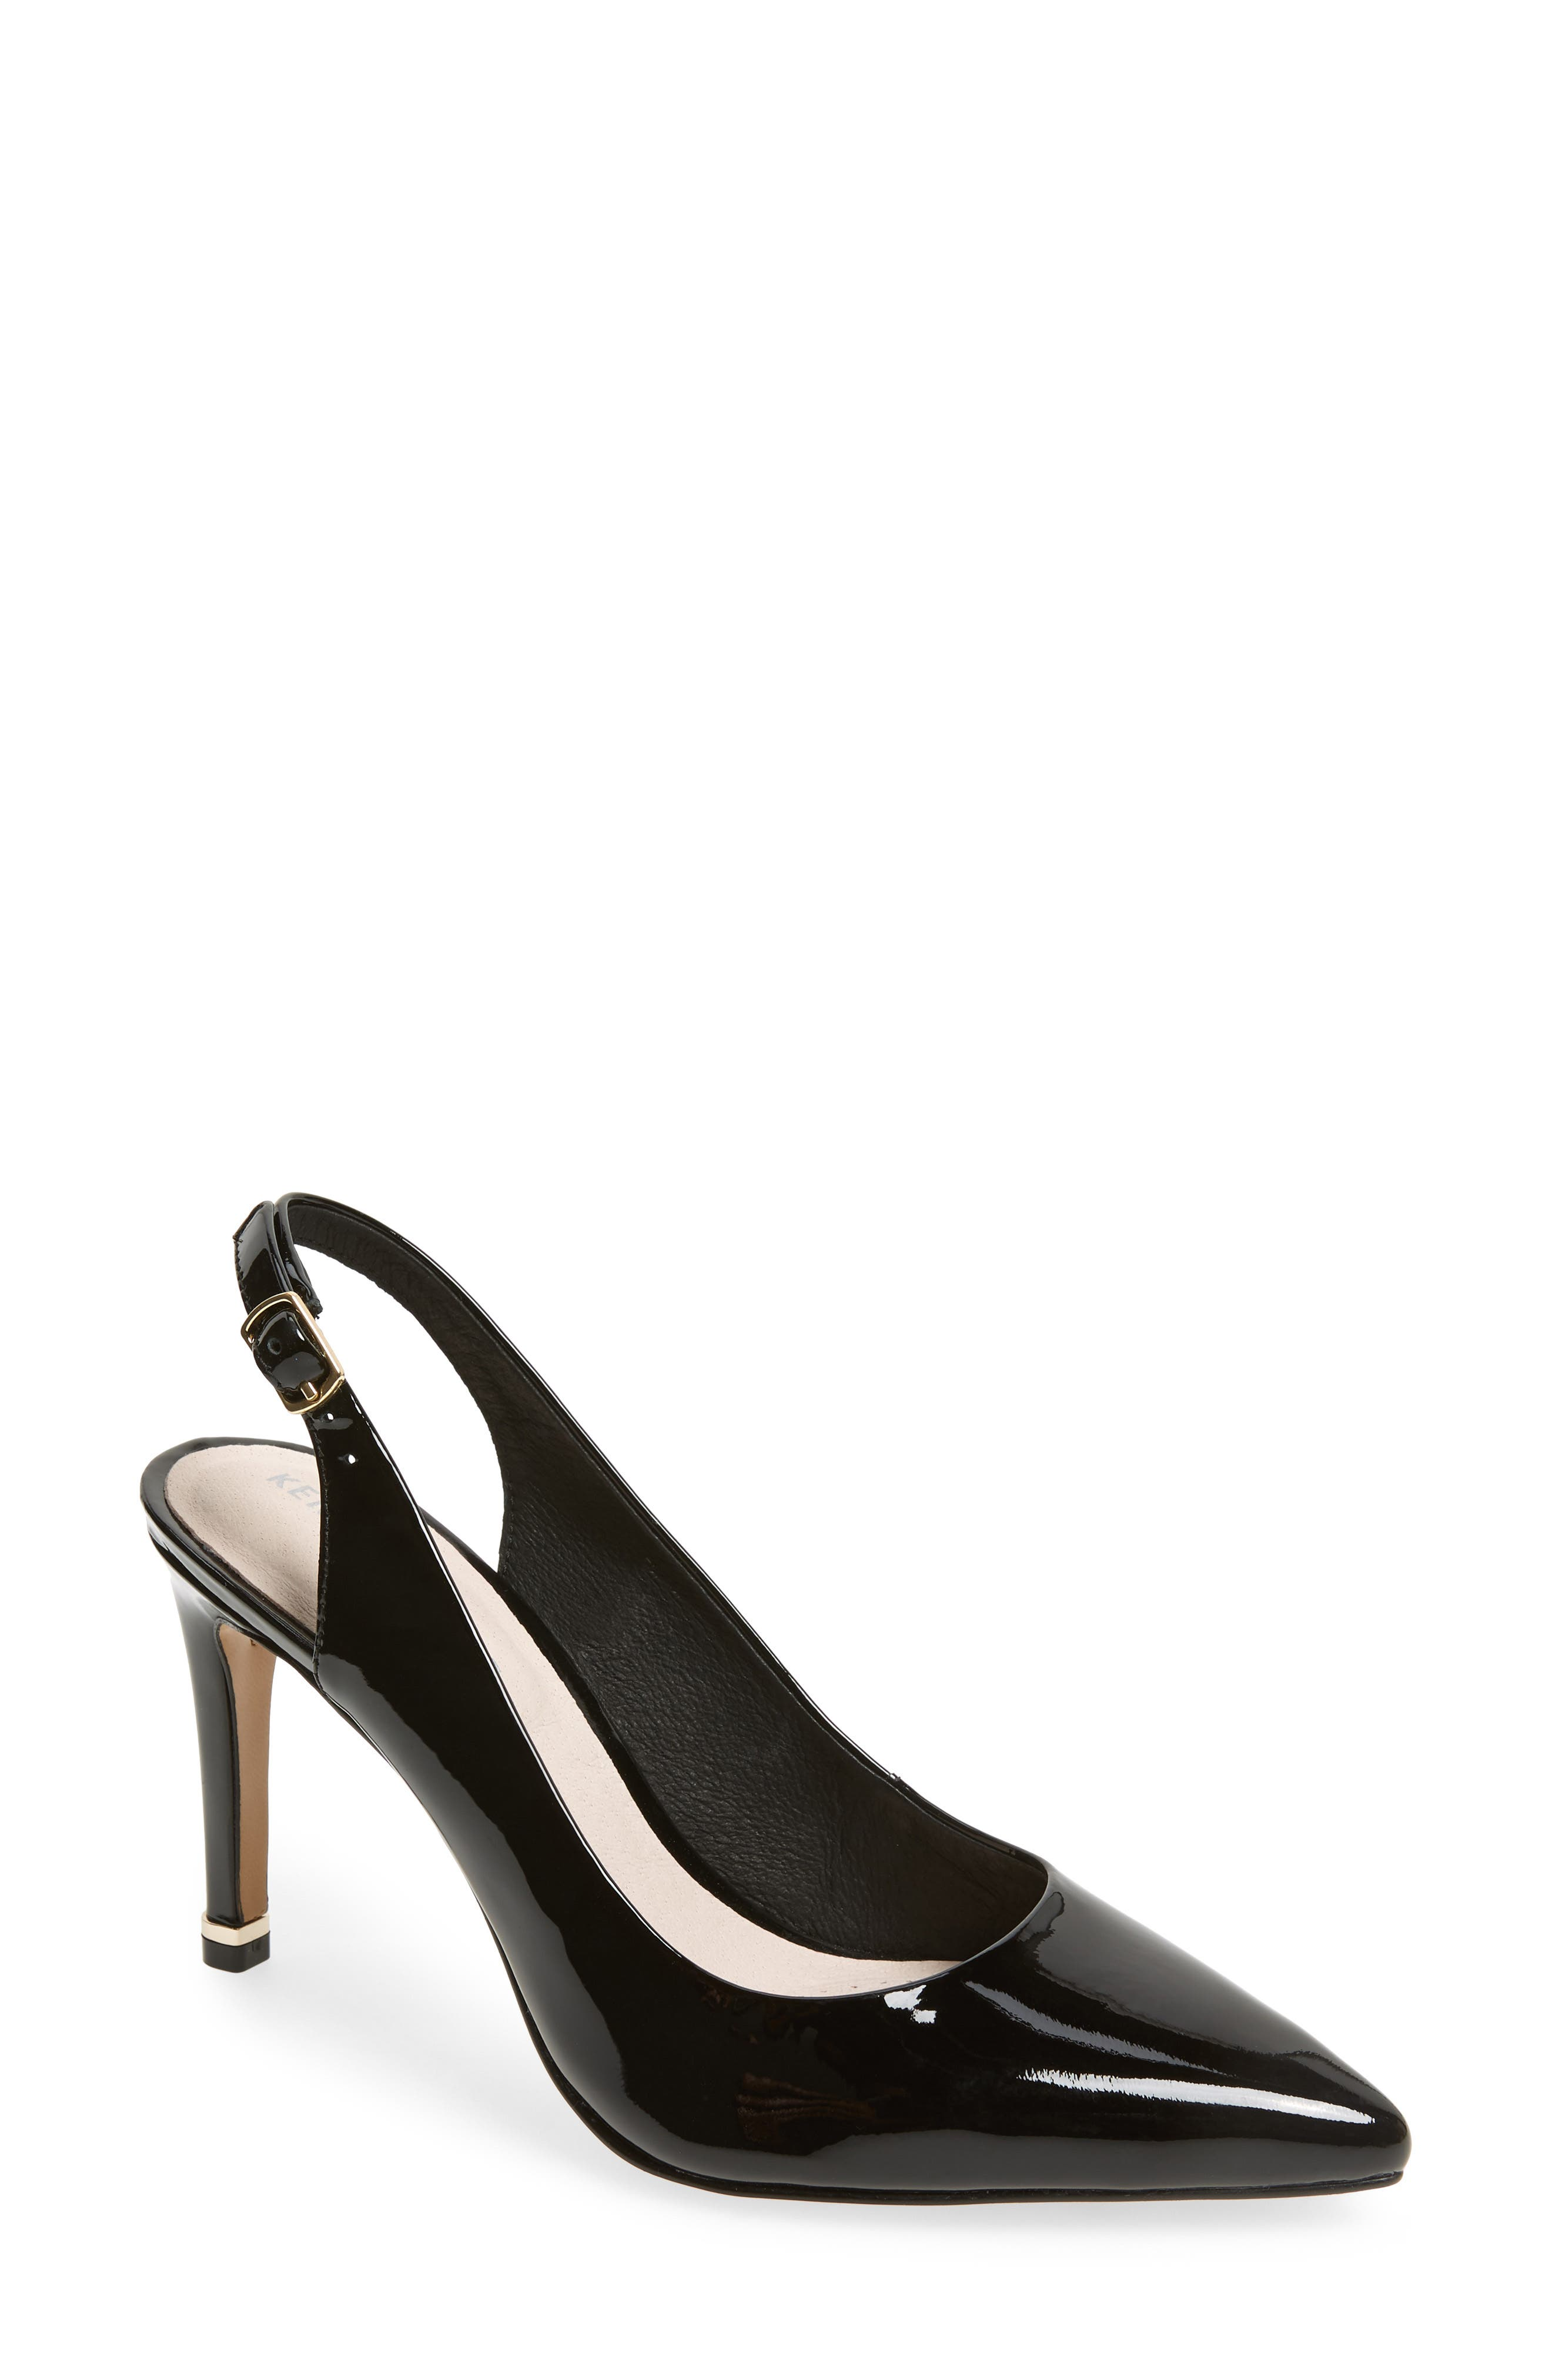 KENNETH COLE NEW YORK Riley 85 Slingback Pump, Main, color, BLACK PATENT LEATHER